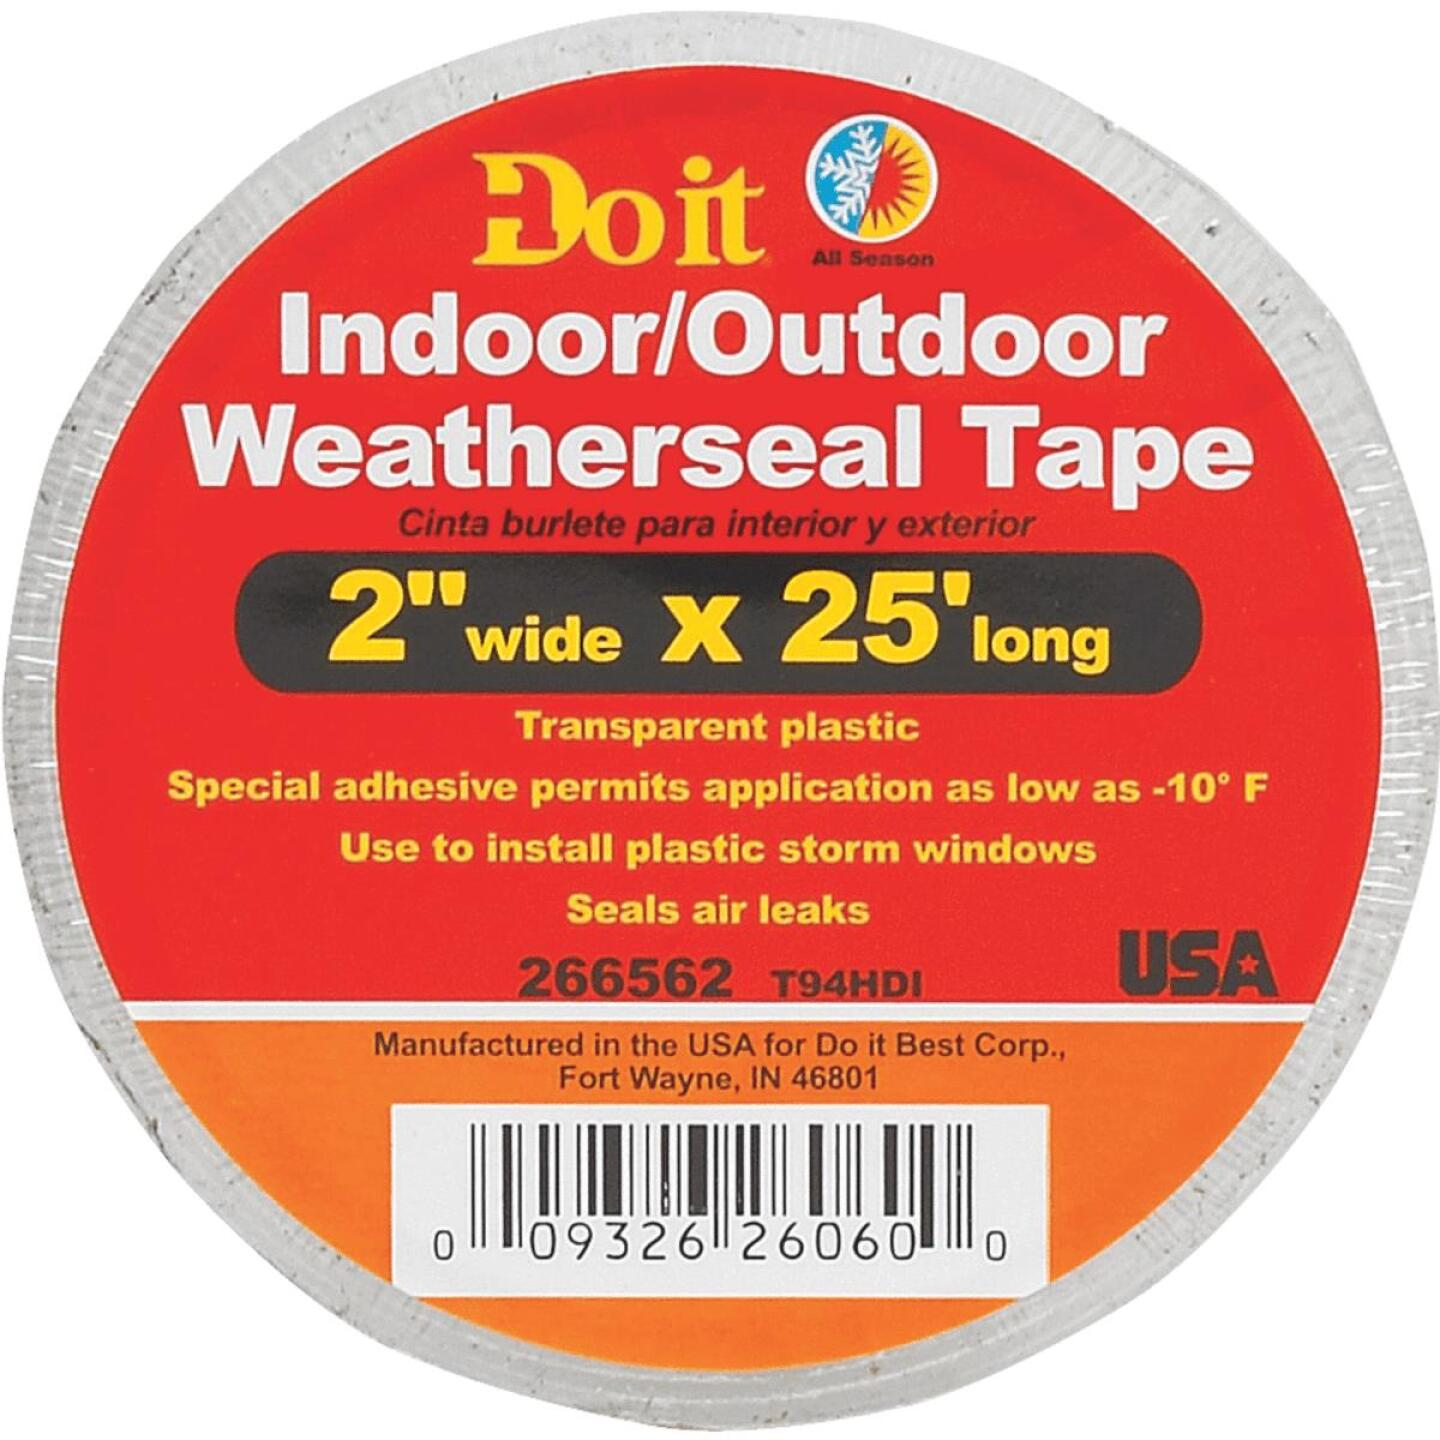 Do it 2 In. x 25 Ft. Clear Weatherseal Tape Image 2